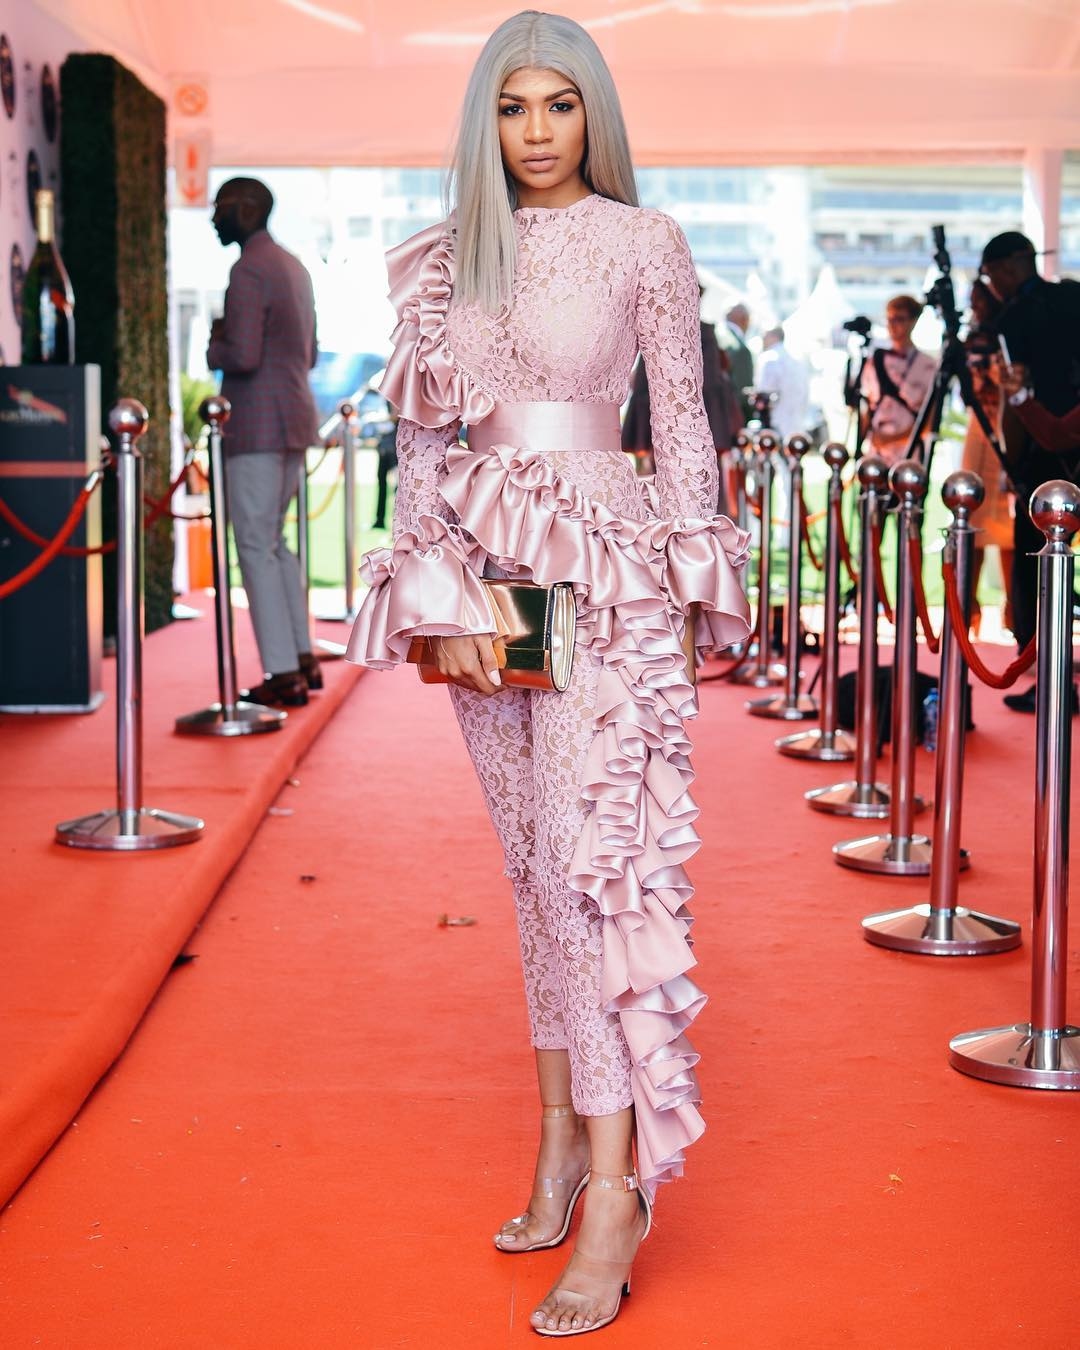 prints-colours-check-bold-colourful-outfits-sunmet-event-cape-town-south-africa